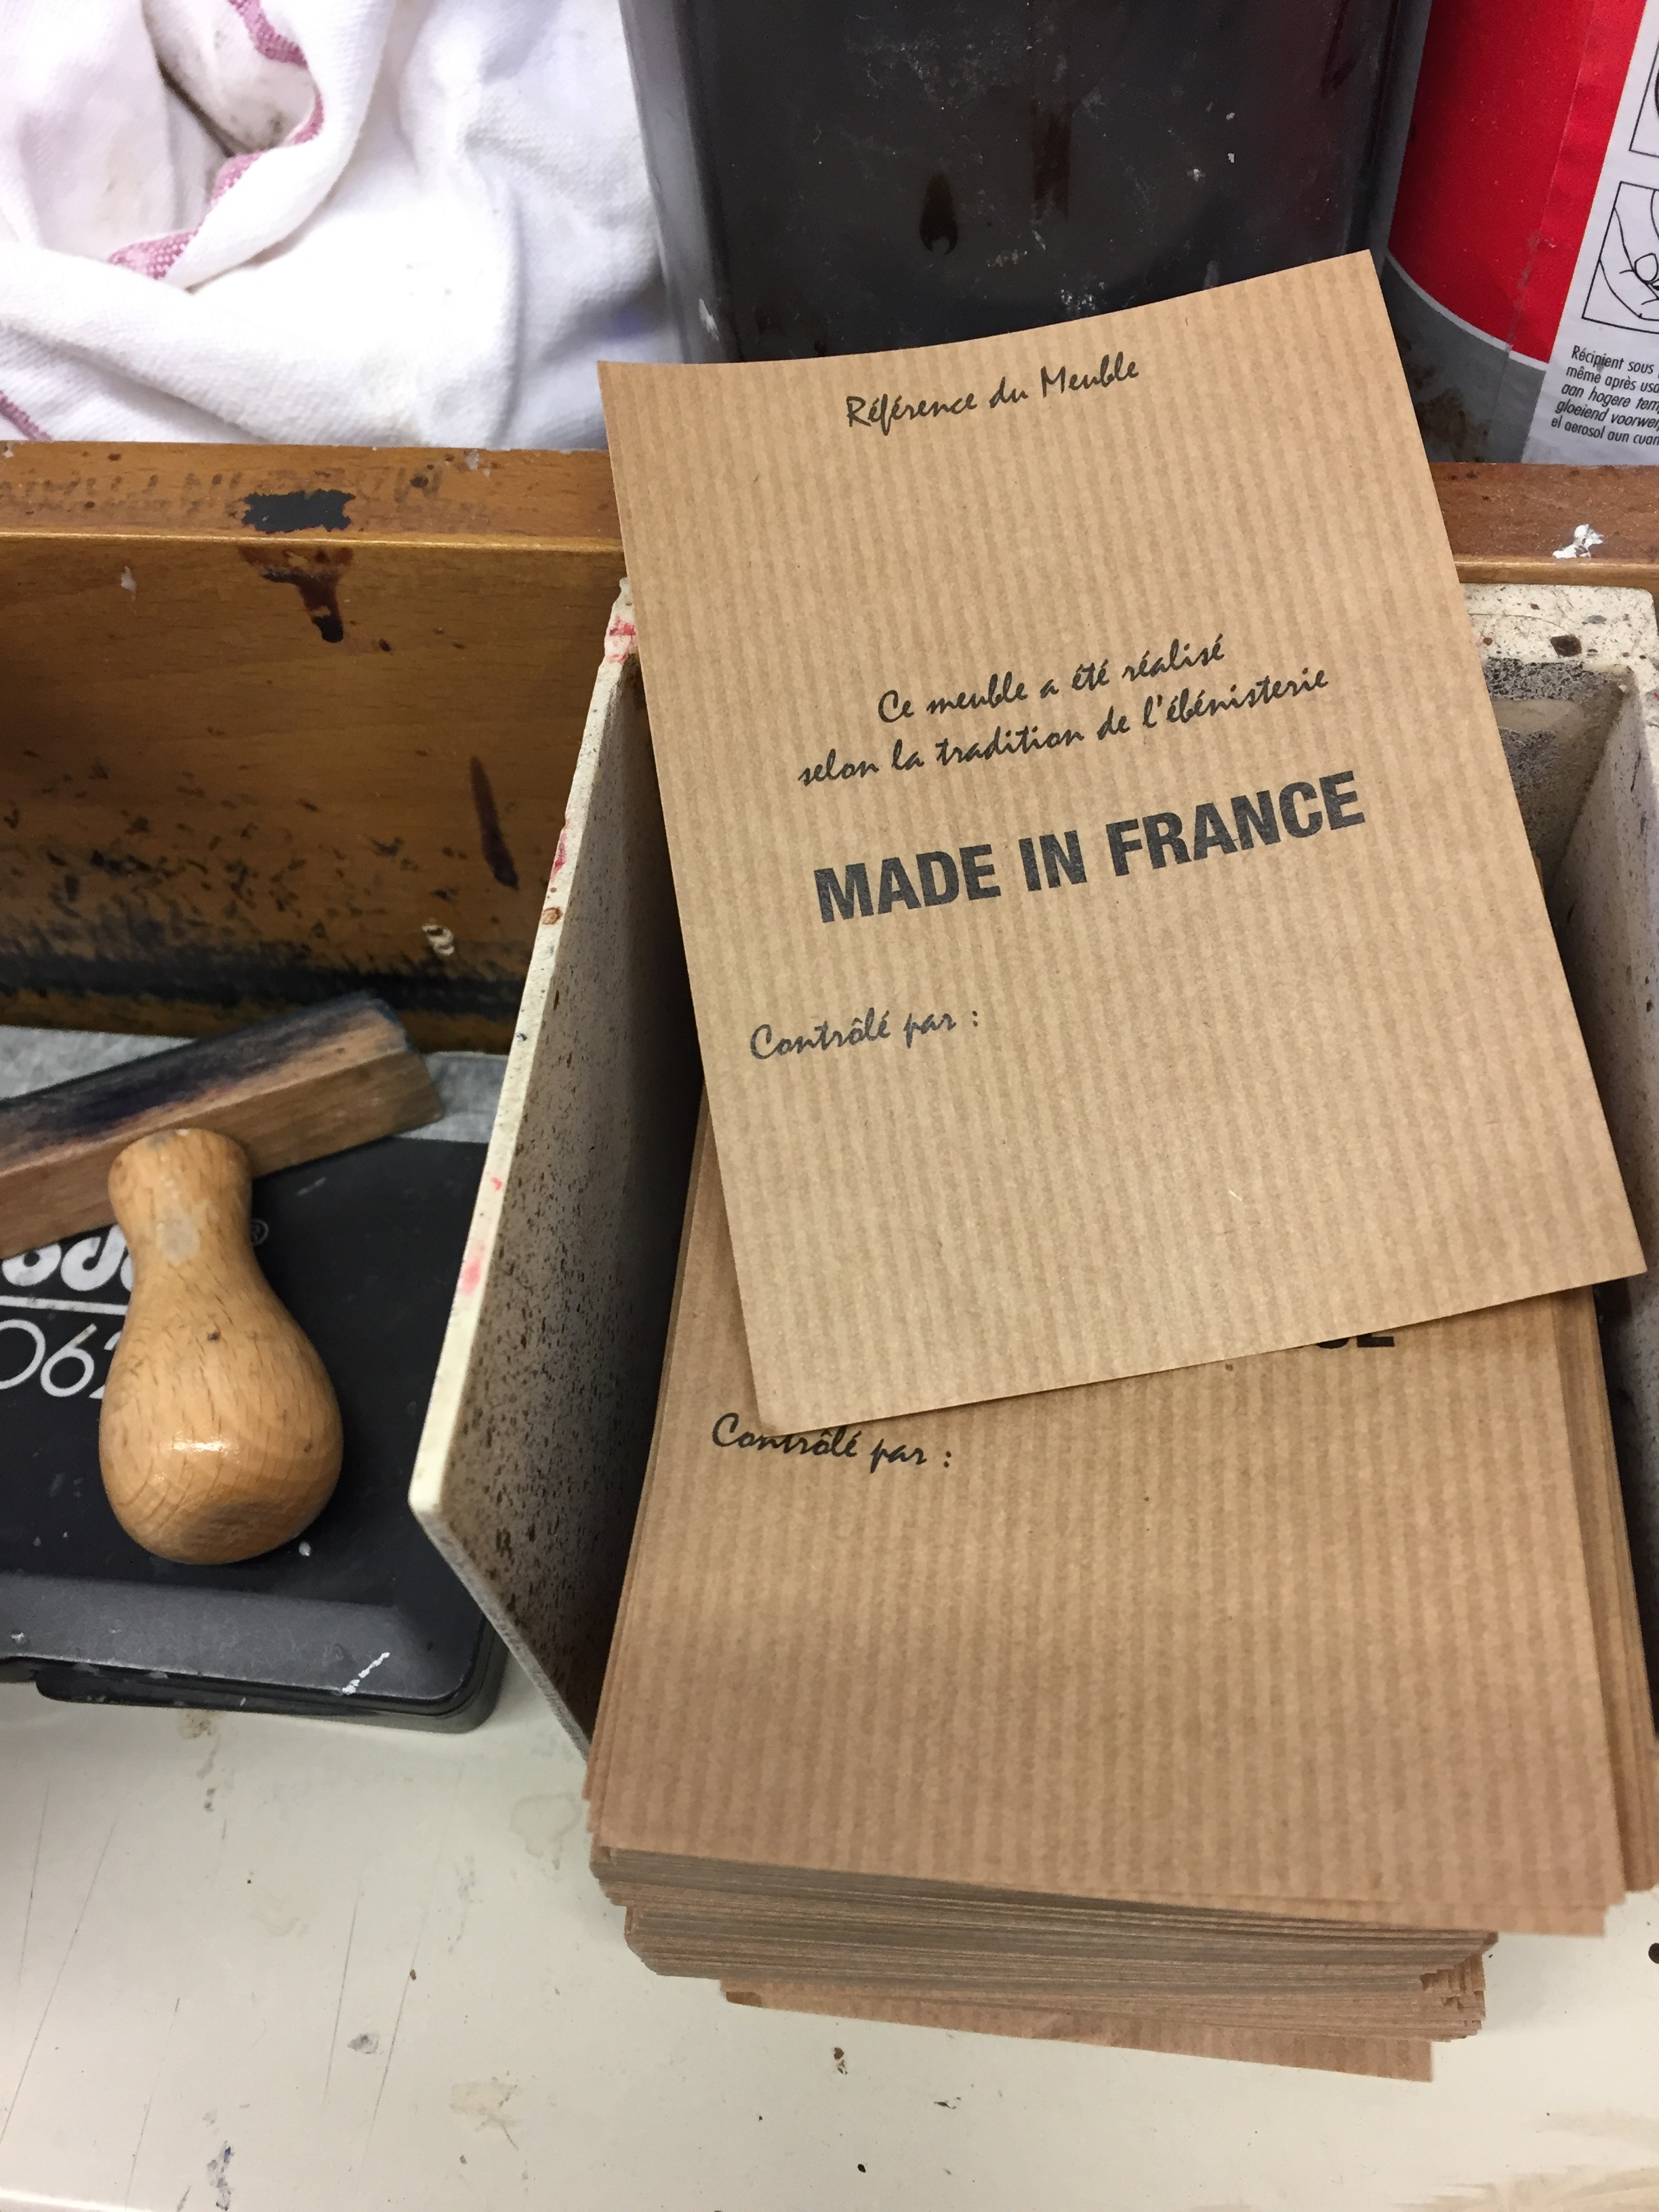 Meubles Grange France How Its Made Visiting Grange Furniture In France Www